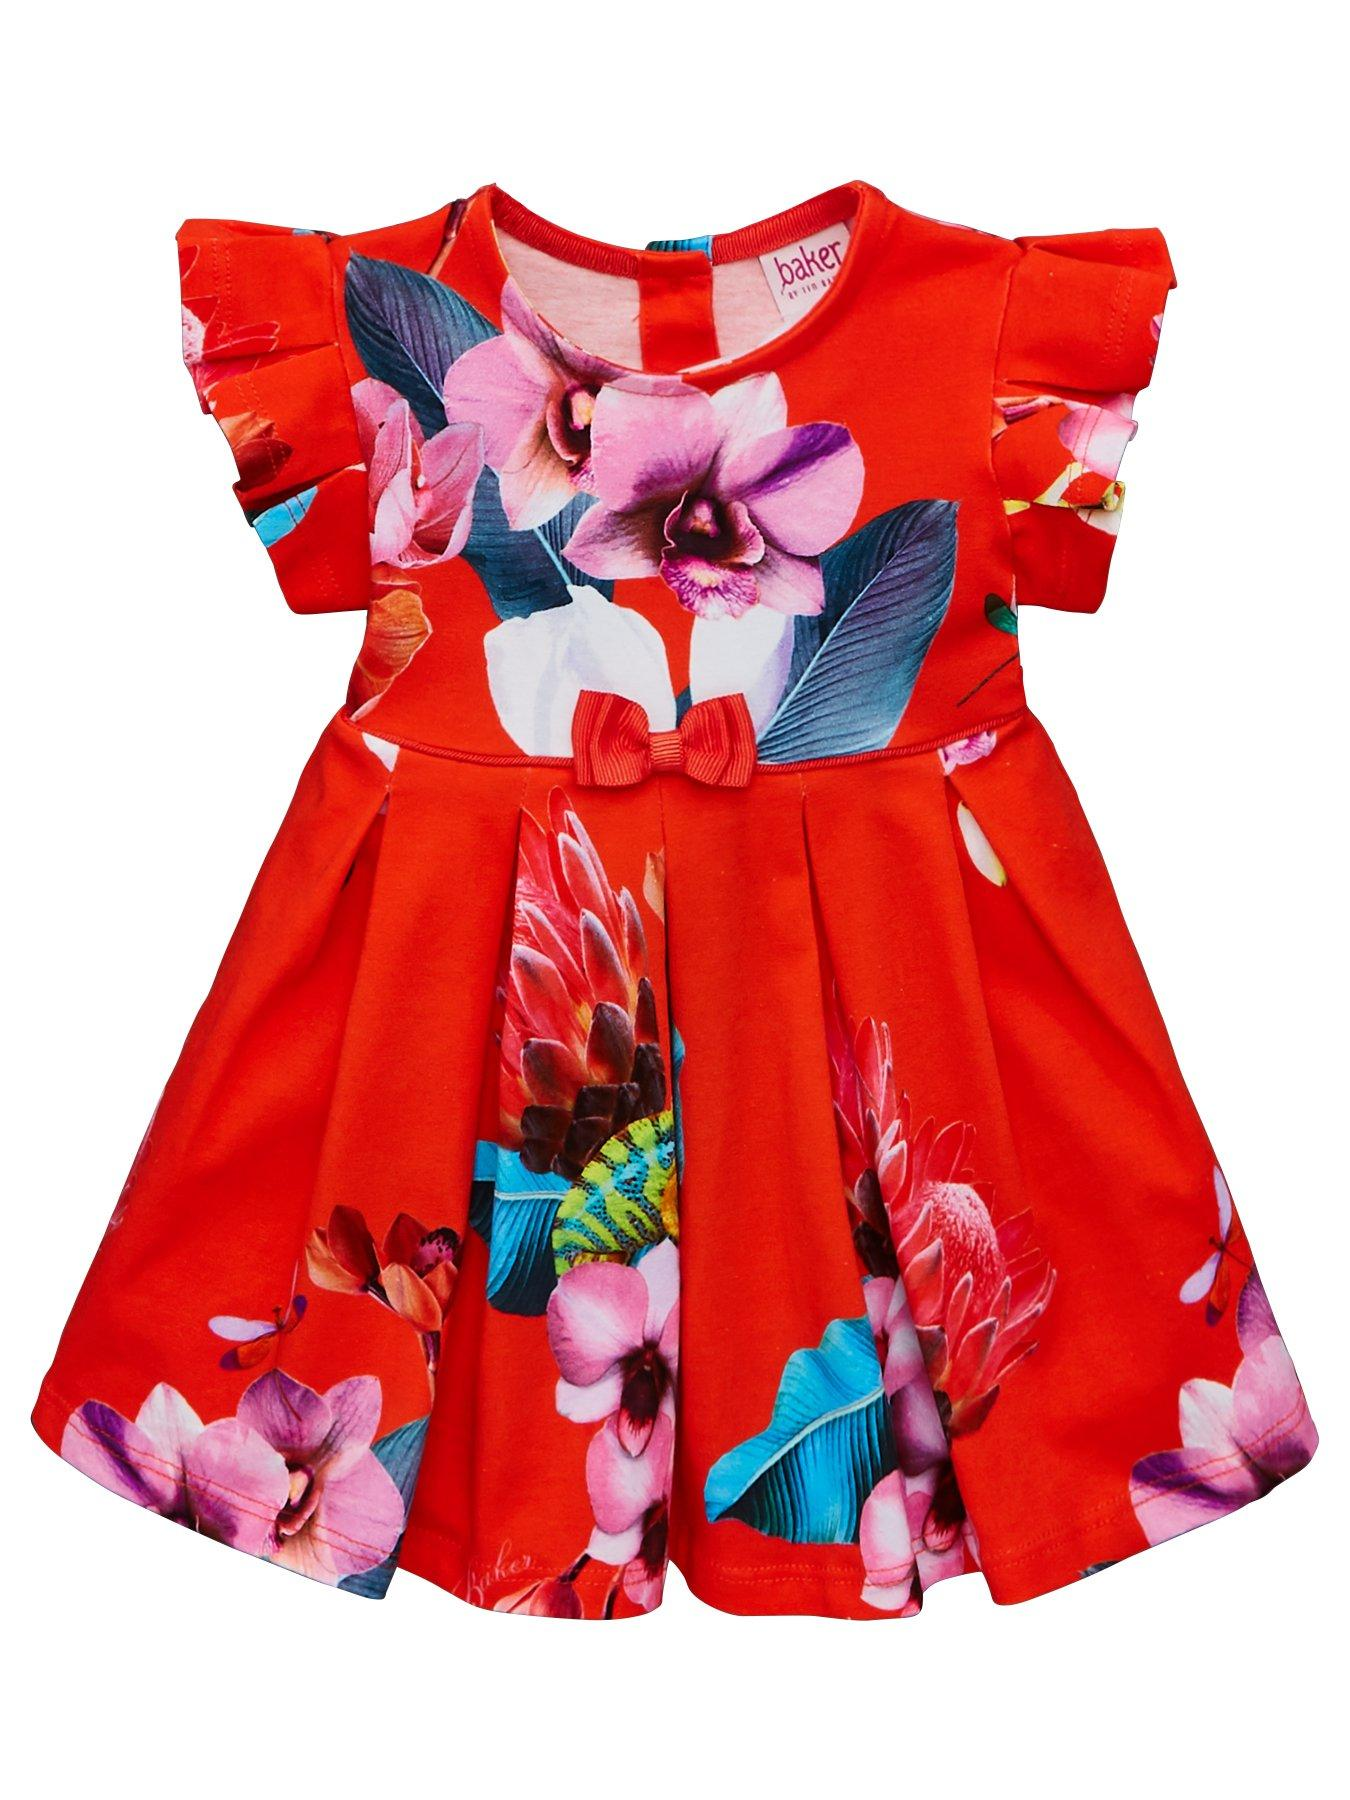 Intelligent Ted Baker 3-6 Months Girls Soft And Light Baby & Toddler Clothing